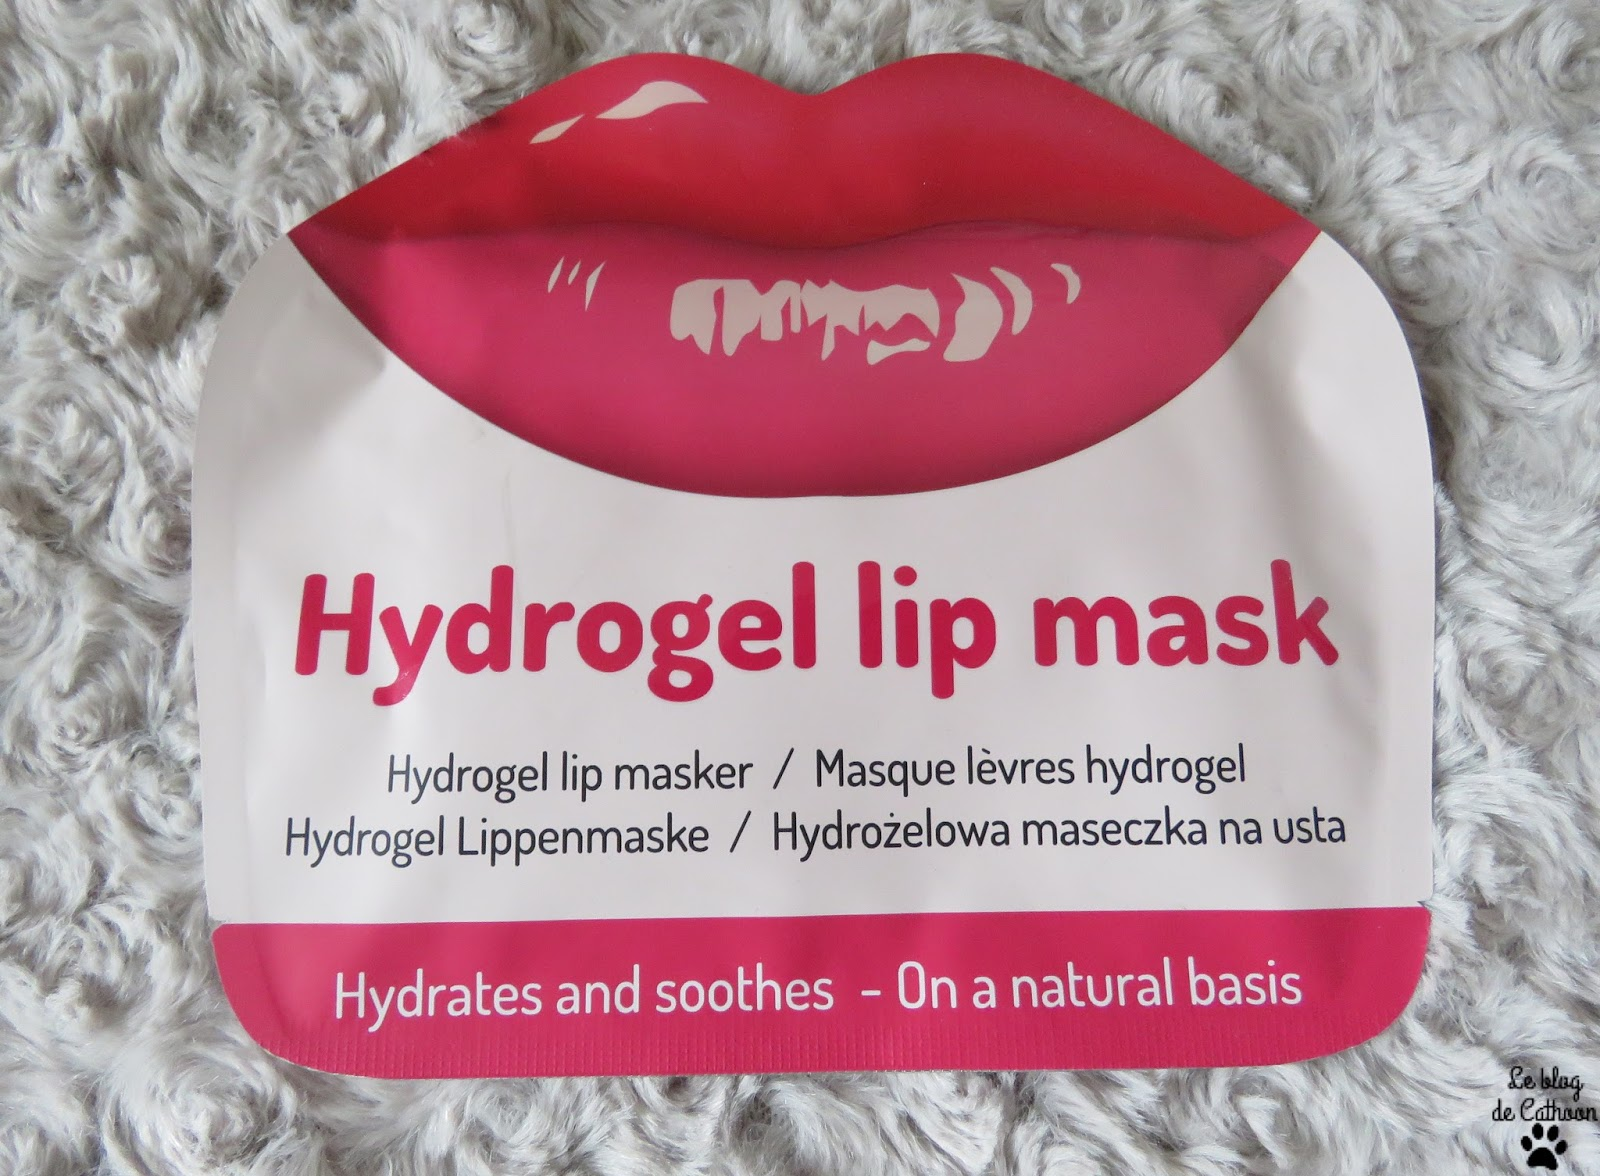 Hydrogel Lip Mask - Mascot Europe - Action